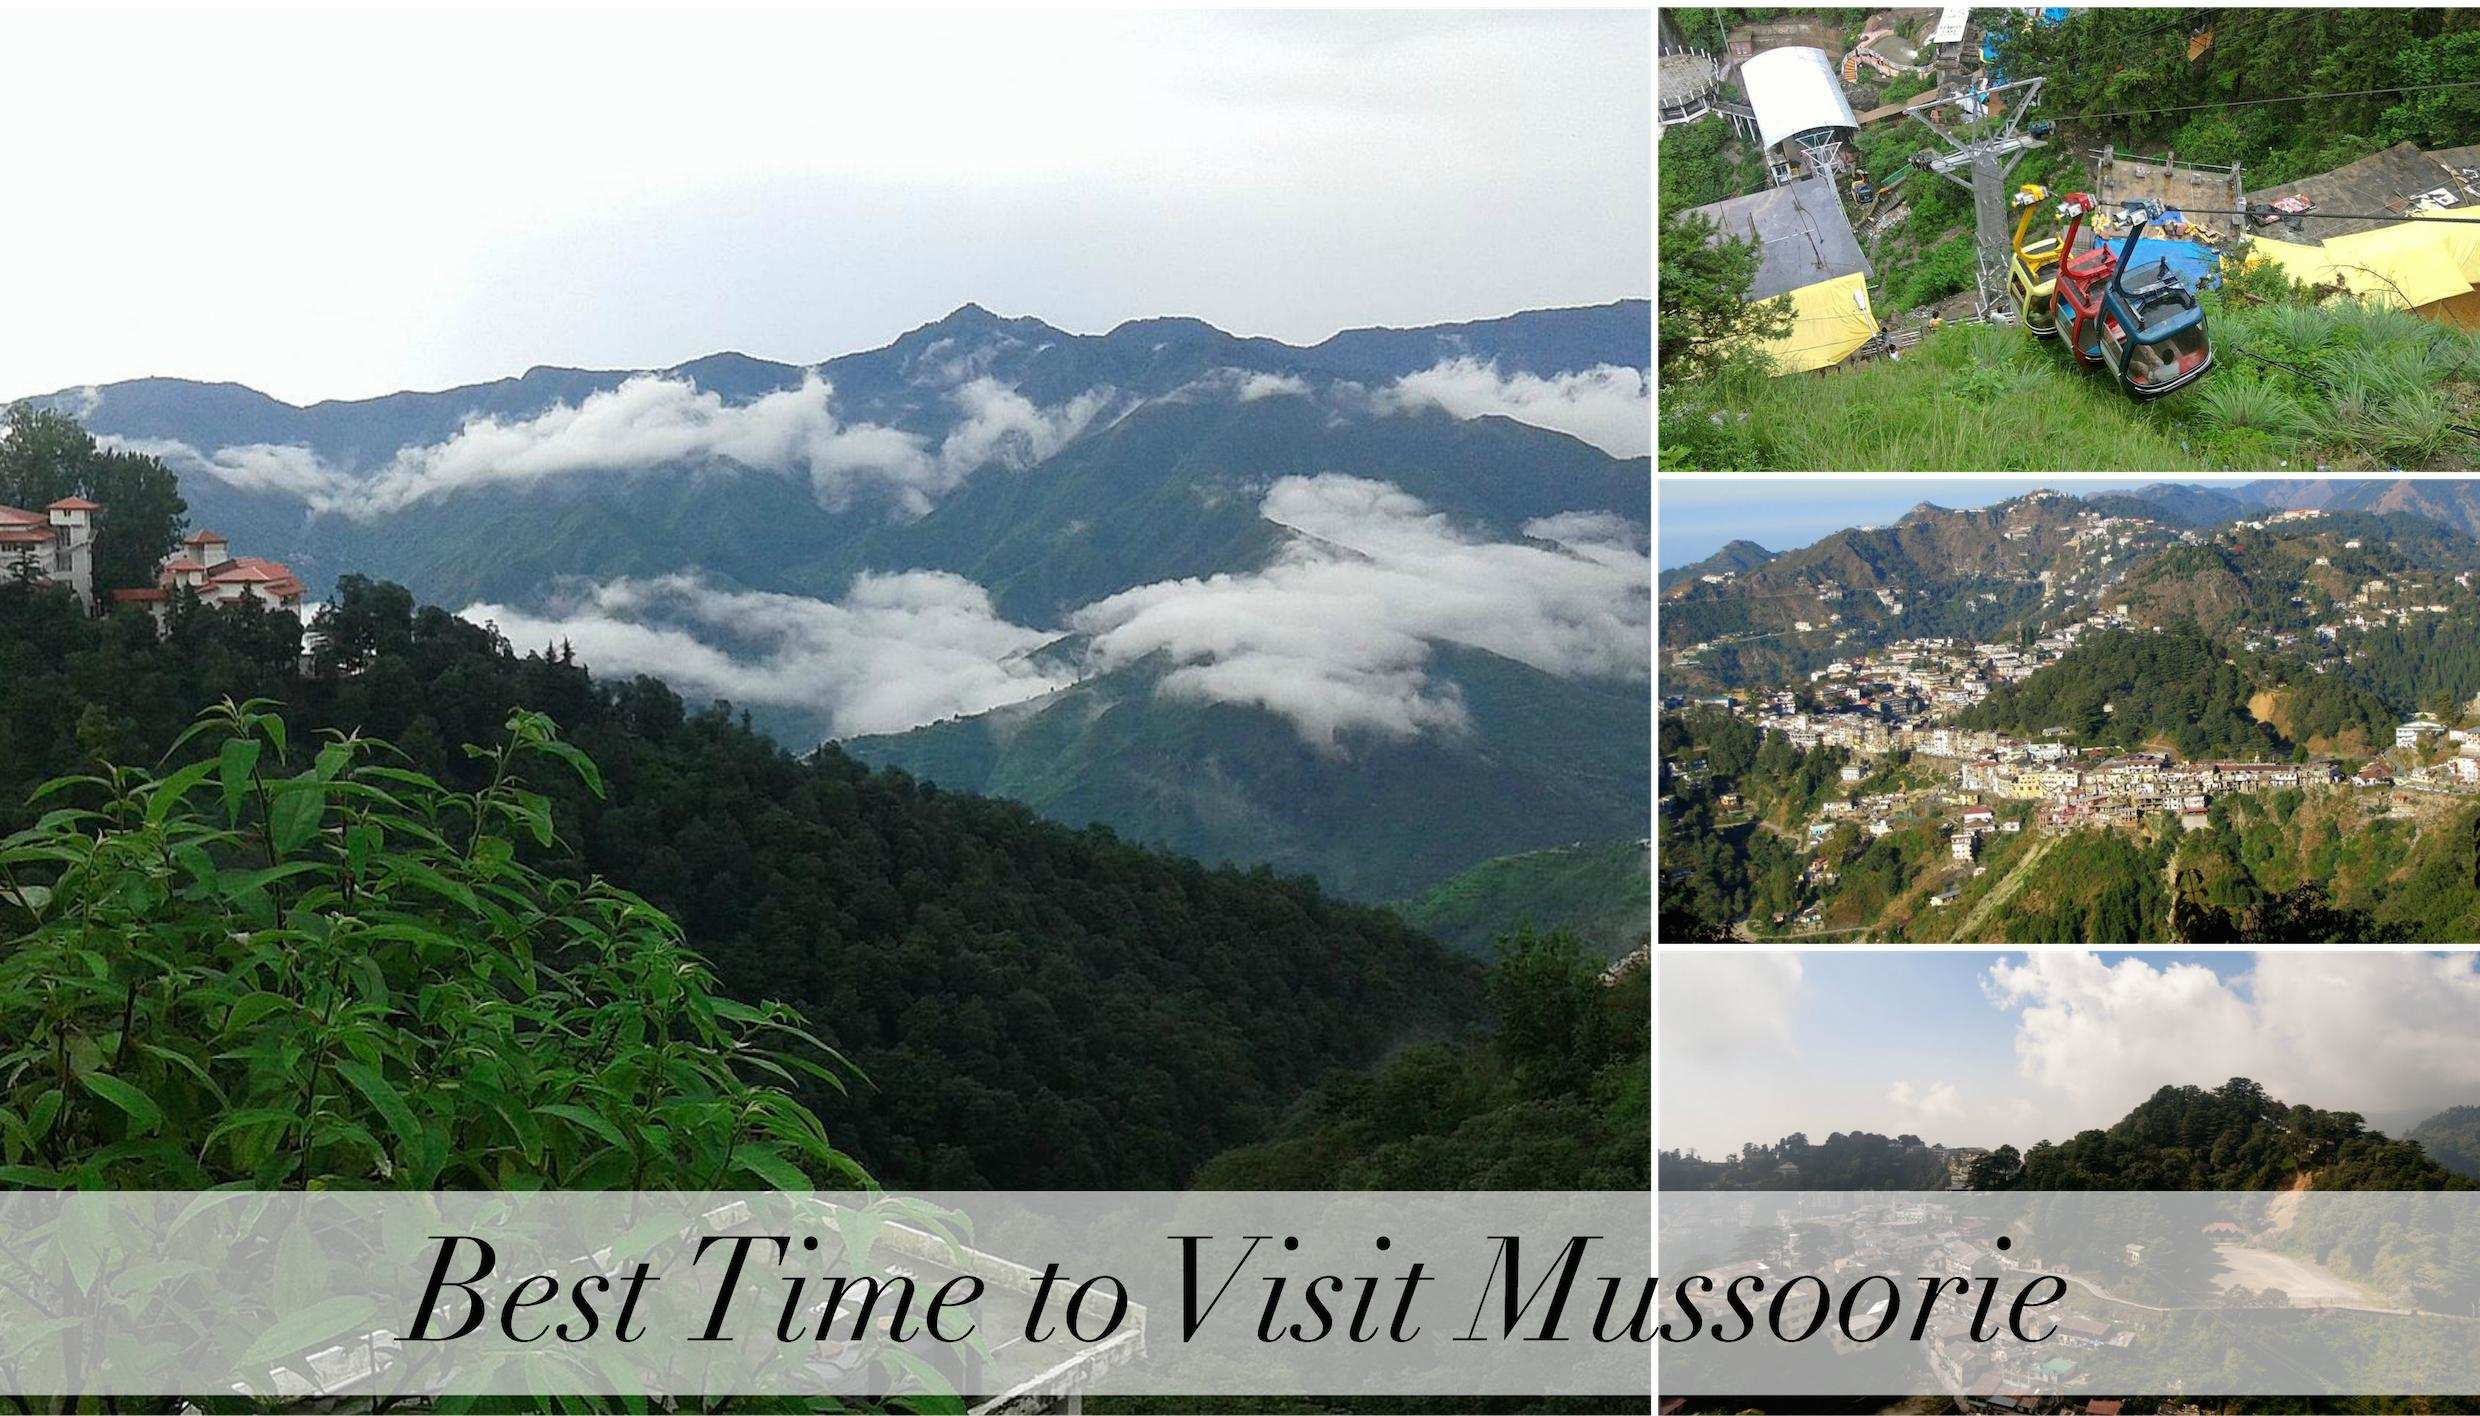 Best-time-to-visit-mussoorie.jpg